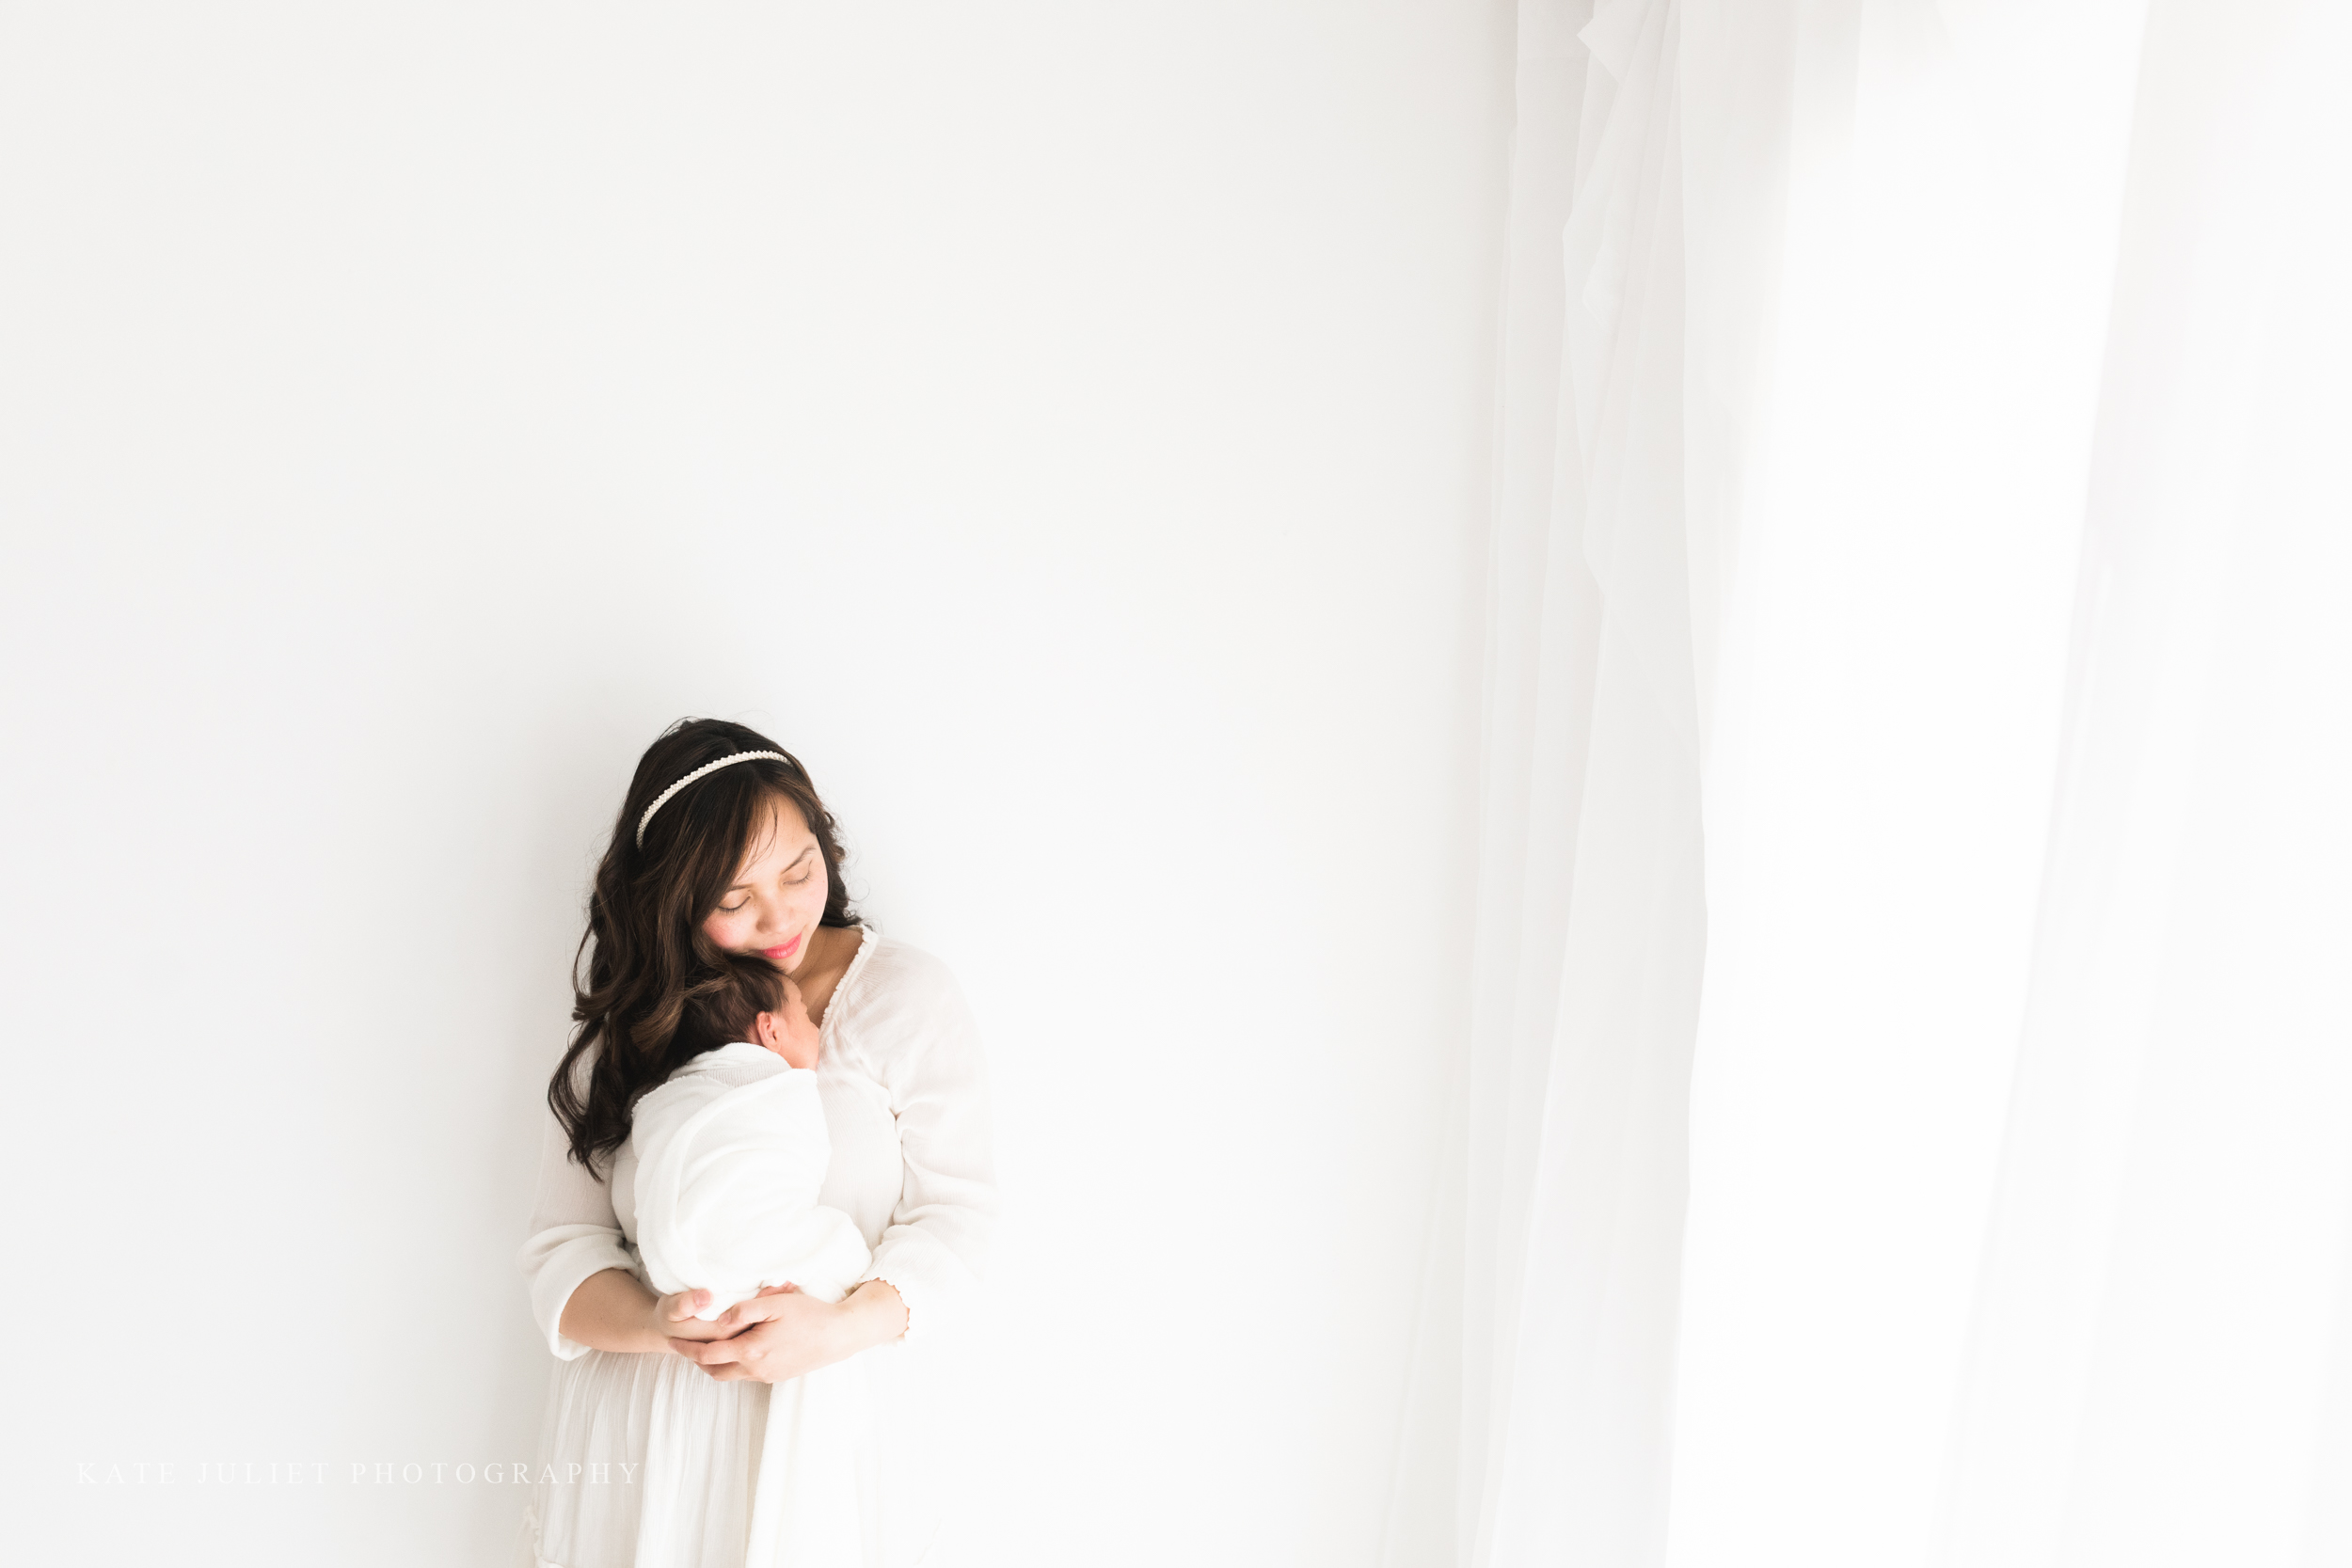 Falls Church VA Newborn Family Photographer | Kate Juliet Photography